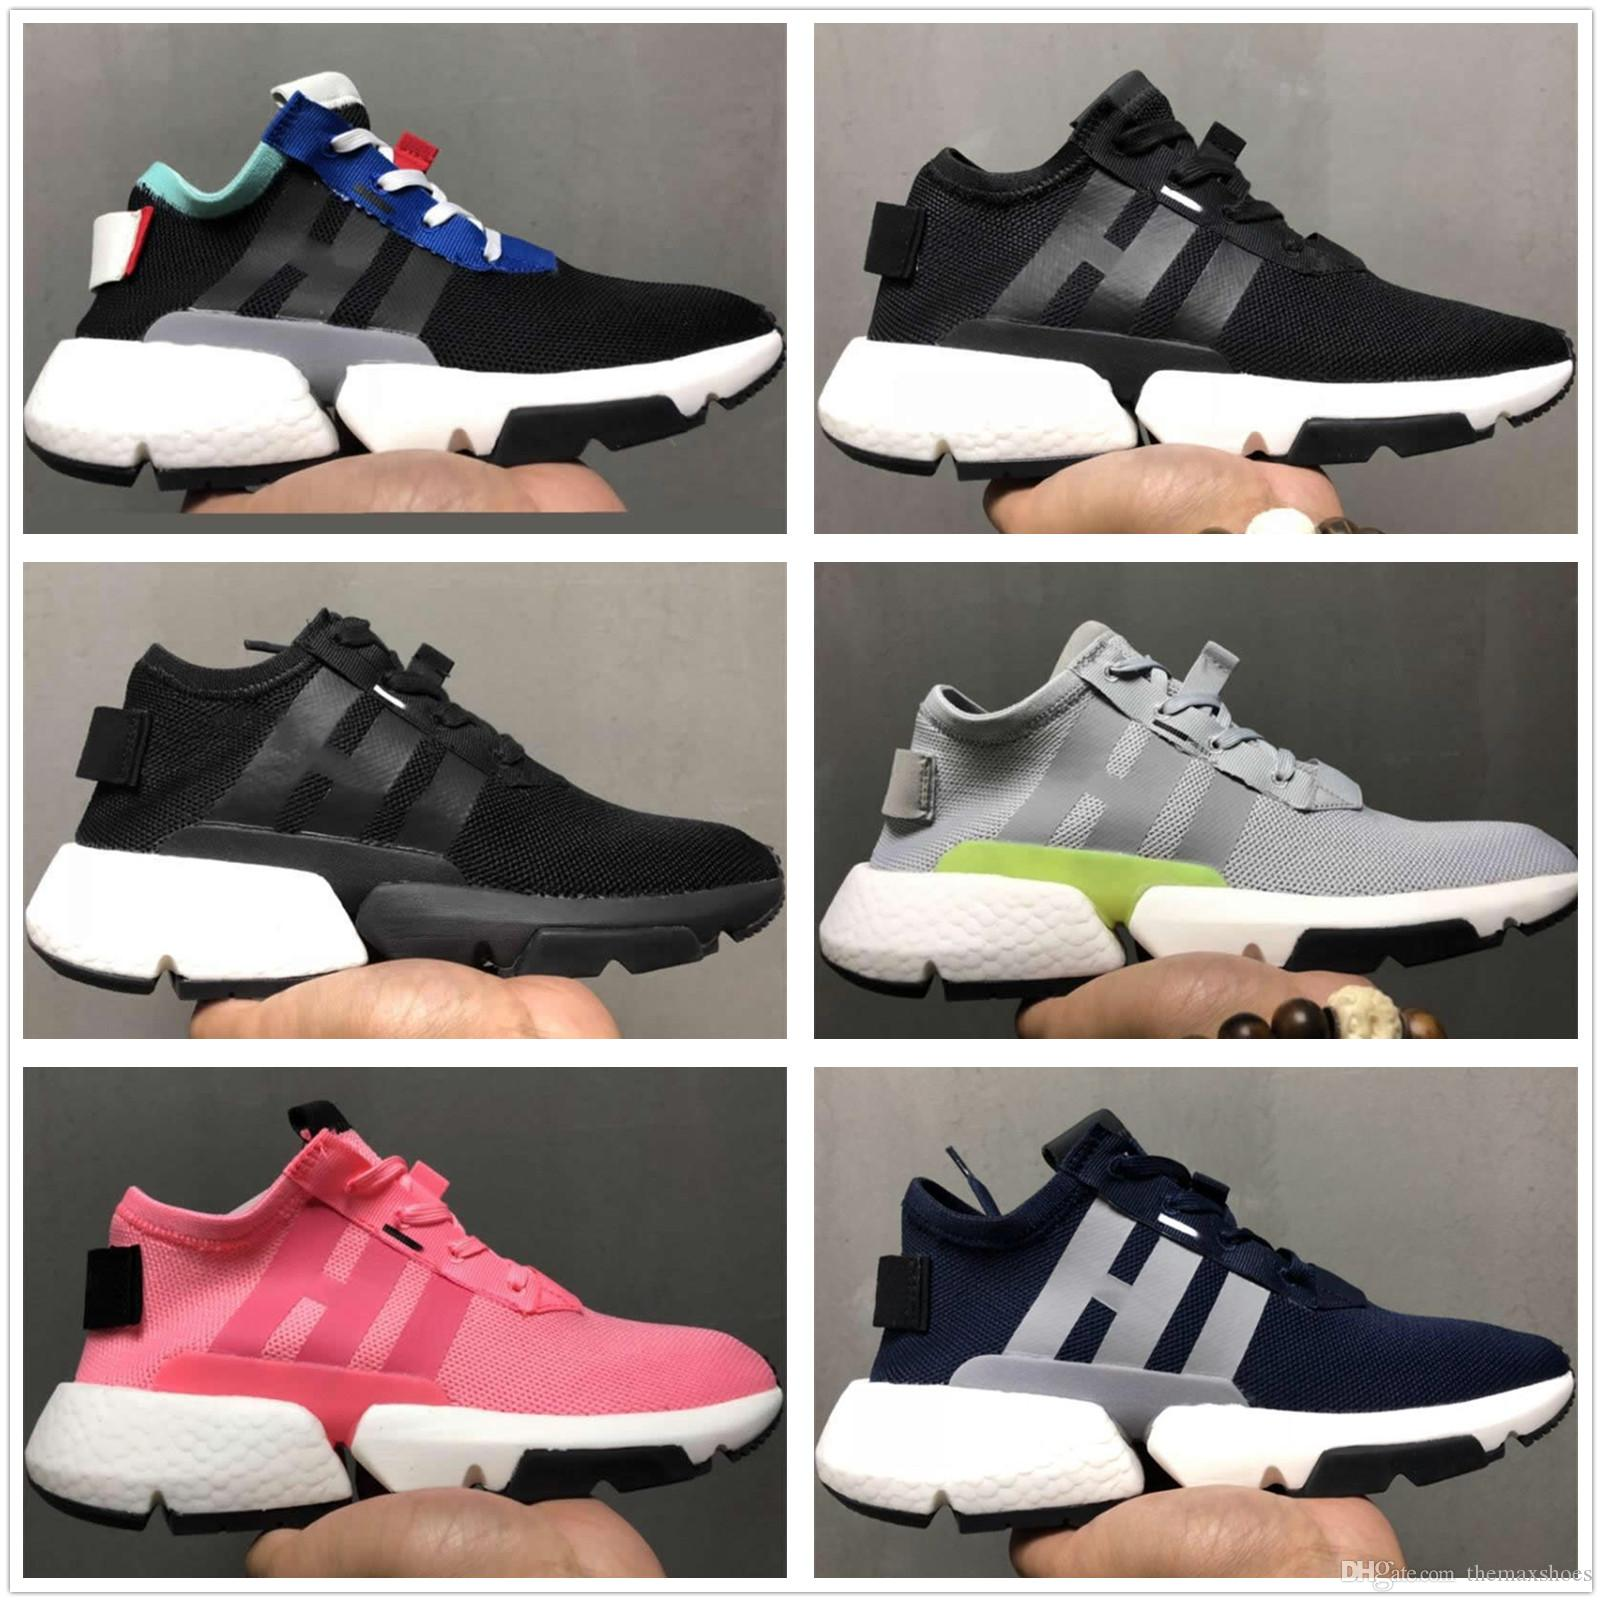 06c56adb00d9f Cheap Youth Basketball Shoes Sneakers Best Brand Tennis Shoes Sneakers